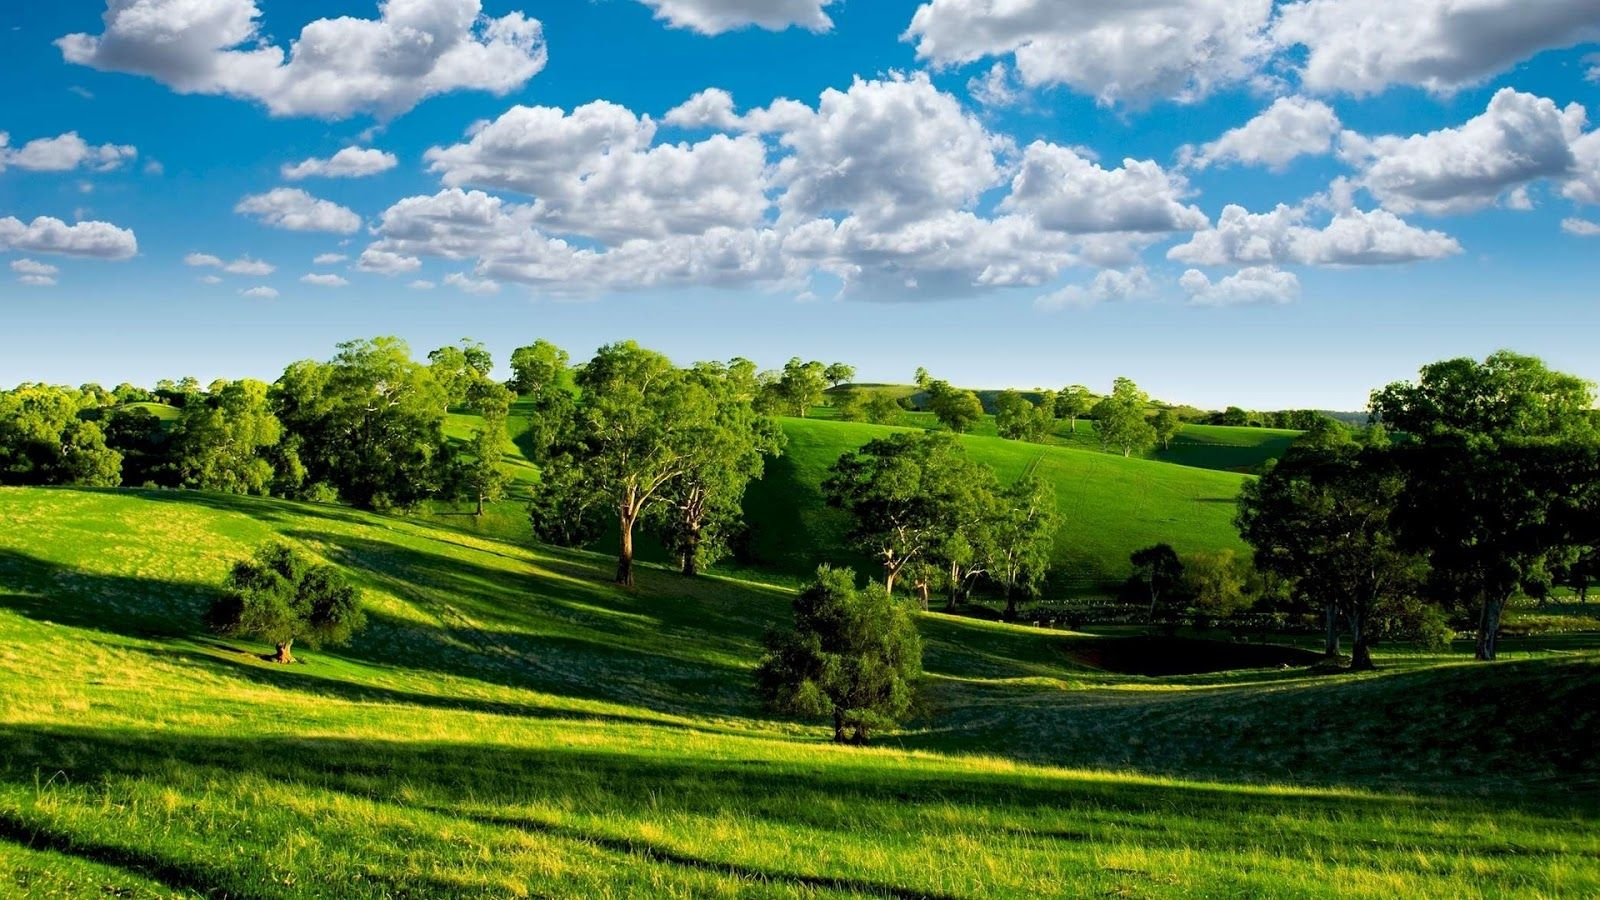 Pictures And Stories From Your Friends On The Road Green Landscape Landscape Wallpaper Landscape